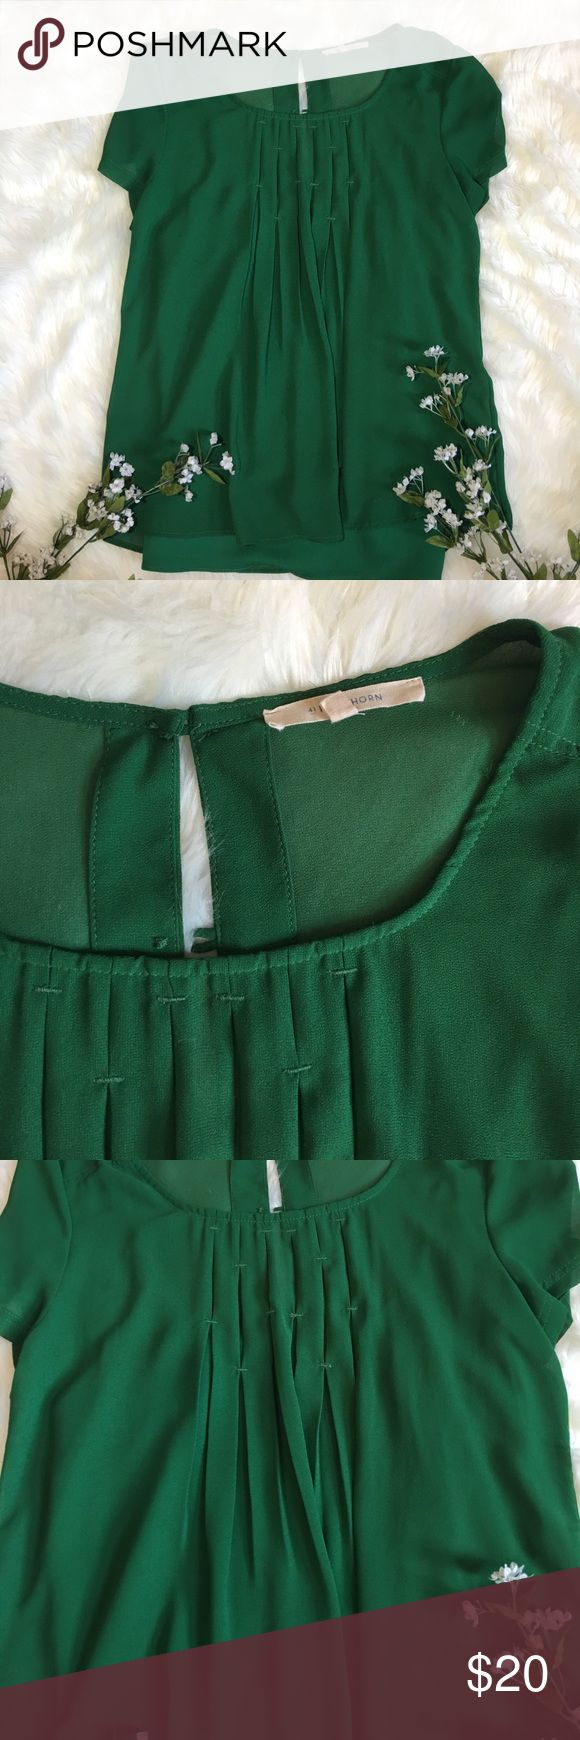 Stitch Fix pleated green short sleeve top sheer Sheer top, under shirt included and snaps into shirt, perfect condition Stitch Fix Tops Blouses